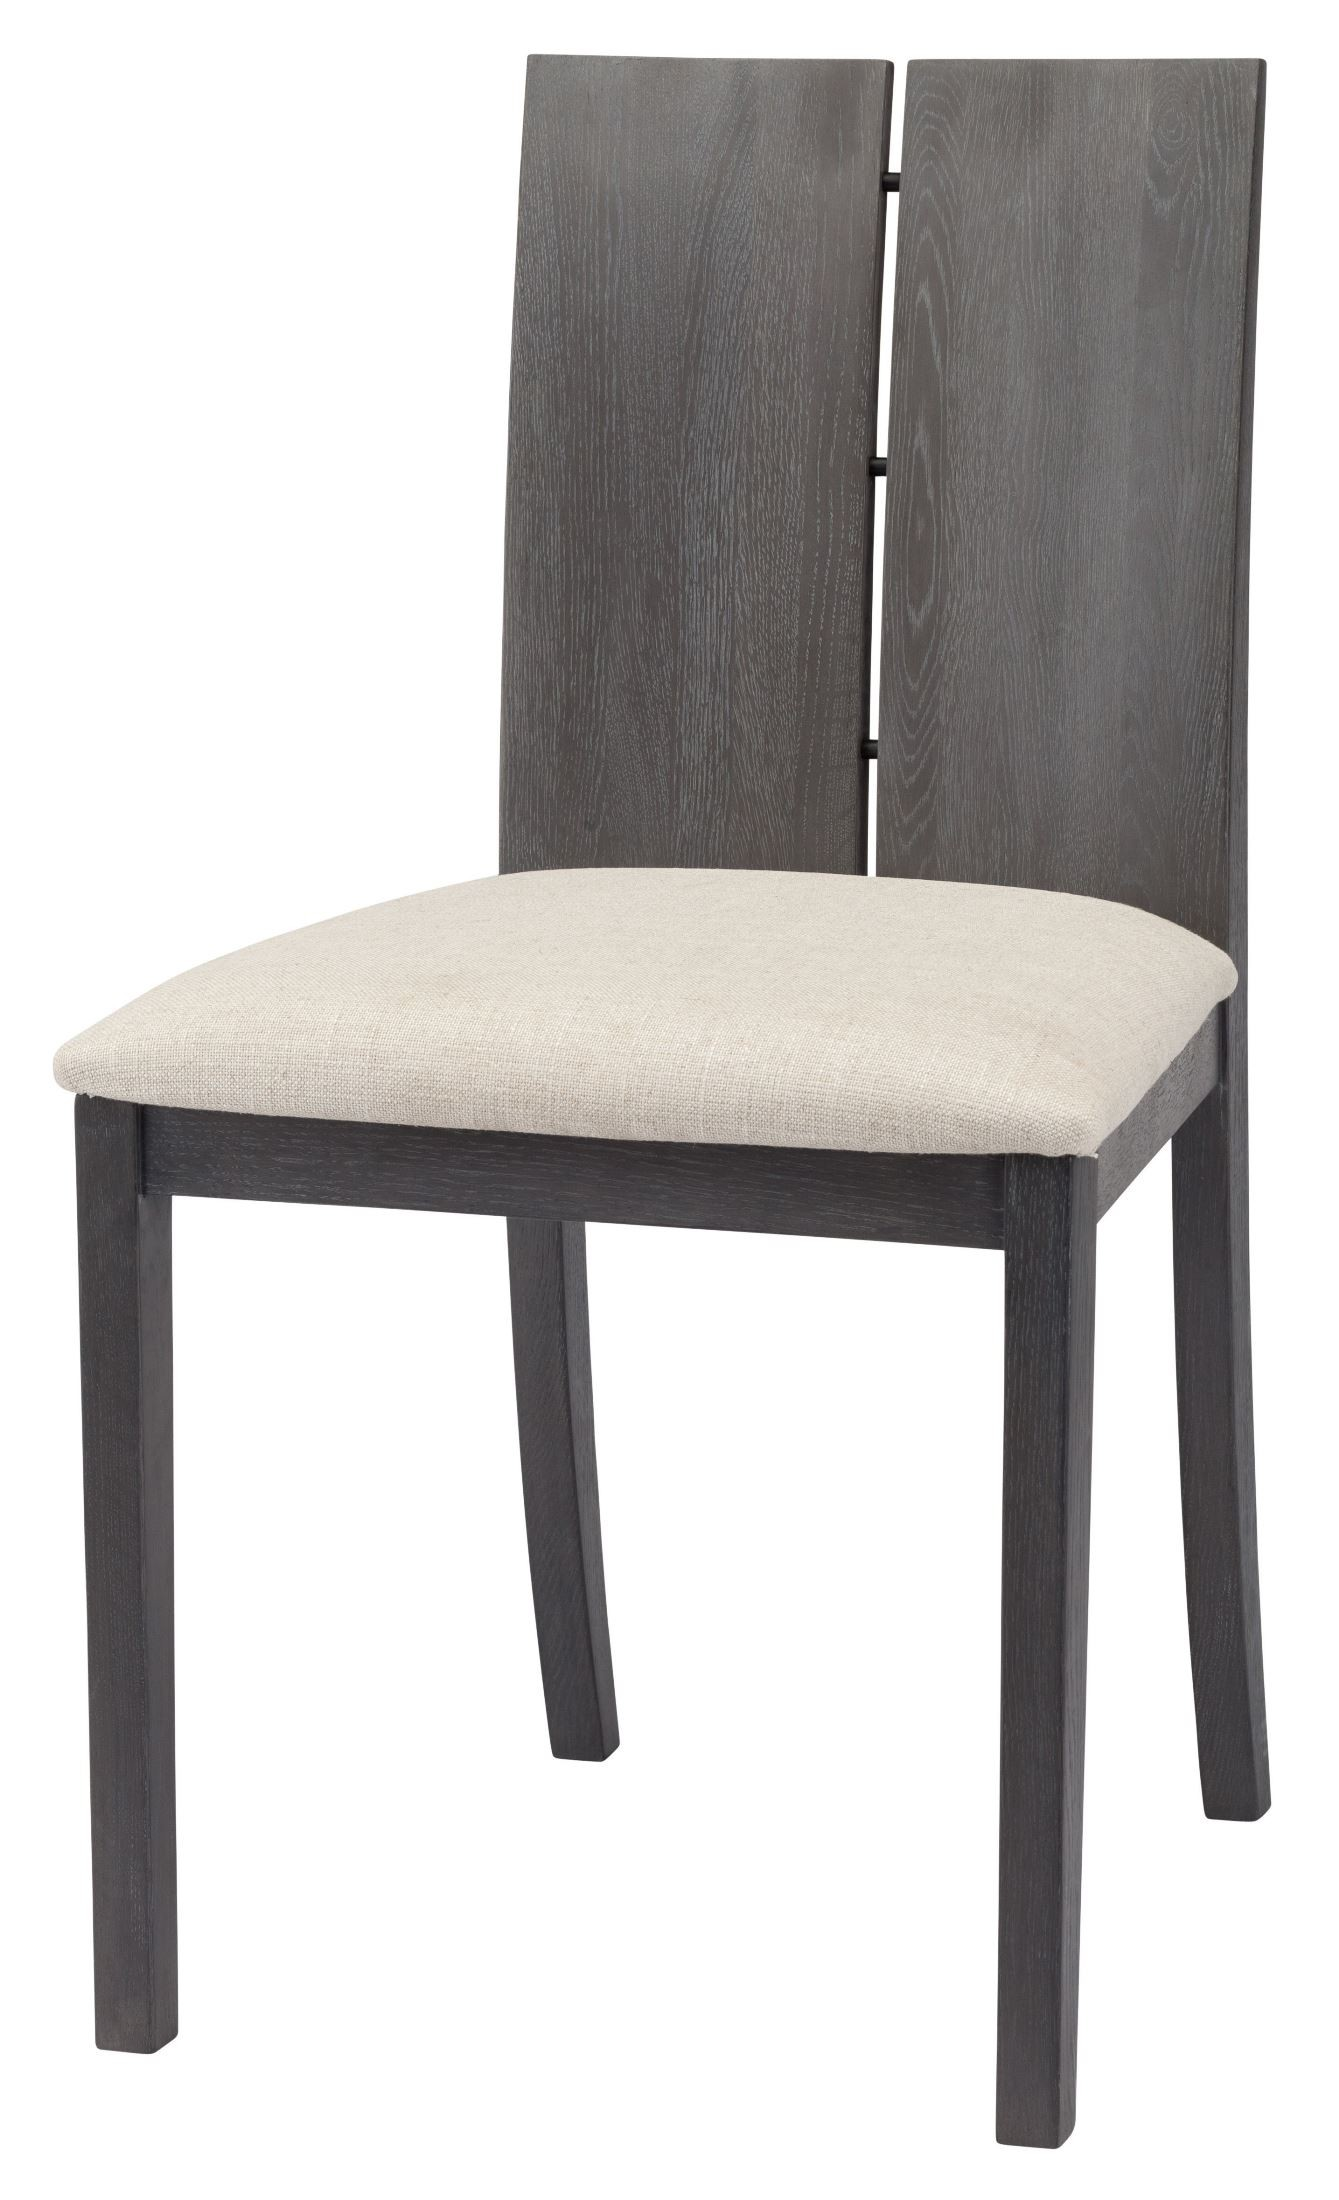 Grey Wood Dining Chairs Eva Beige Fabric And Grey Oxidized Wood Dining Chair From